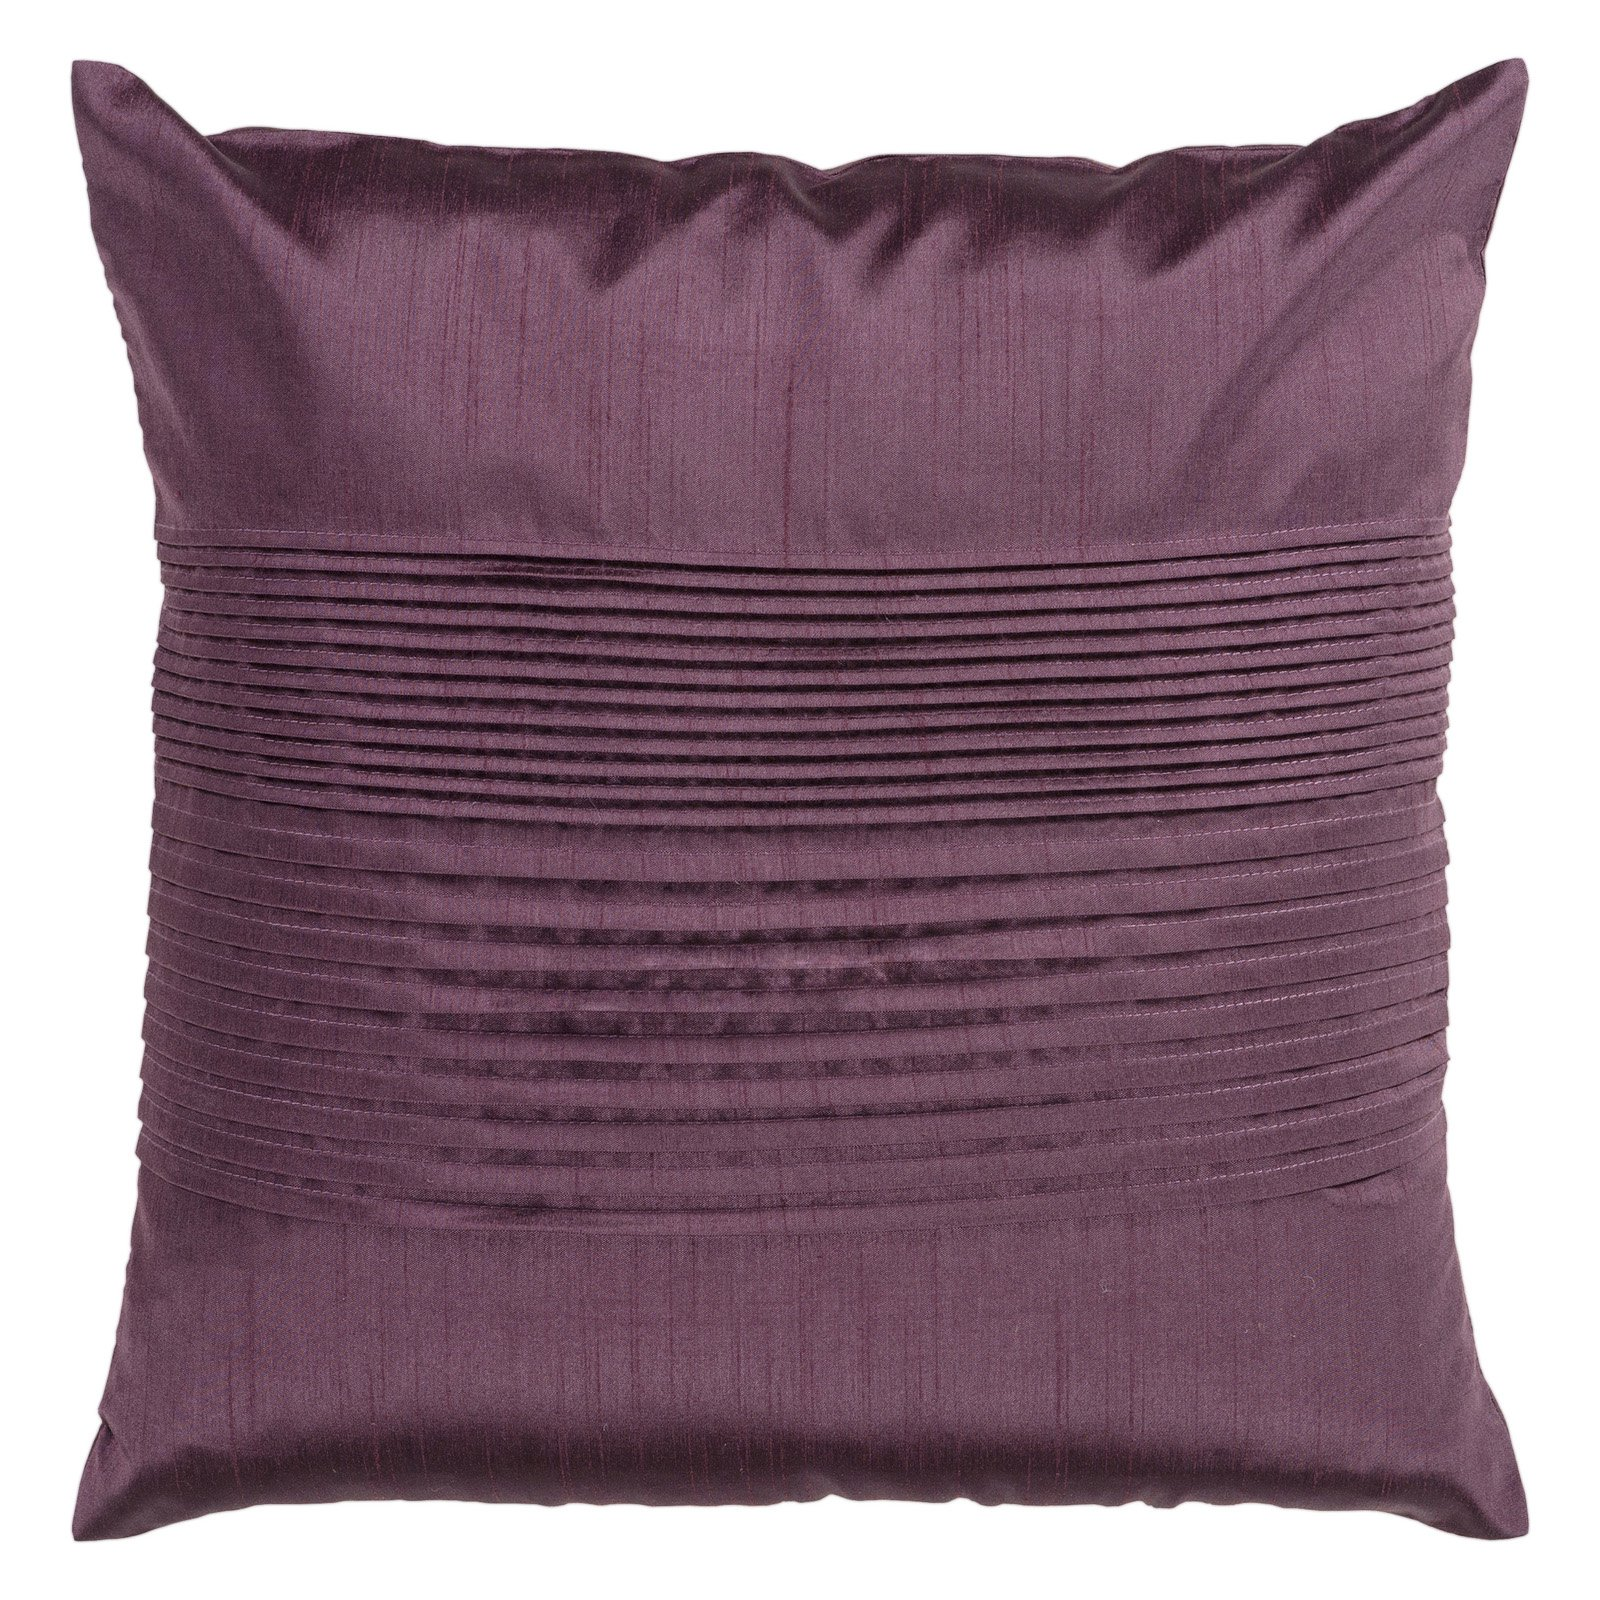 Surya Tracks Decorative Pillow  Plum  Walmartcom. Baby Proof Living Room Ideas. How To Make A Living Room Fort. Living Room Setup With Fireplace. Live Trade Room. Living Room Colors That Go With Brown Furniture. Striped Living Room Curtains. Design Tv Unit Living Room. Modern Tv Wall Units For Living Room